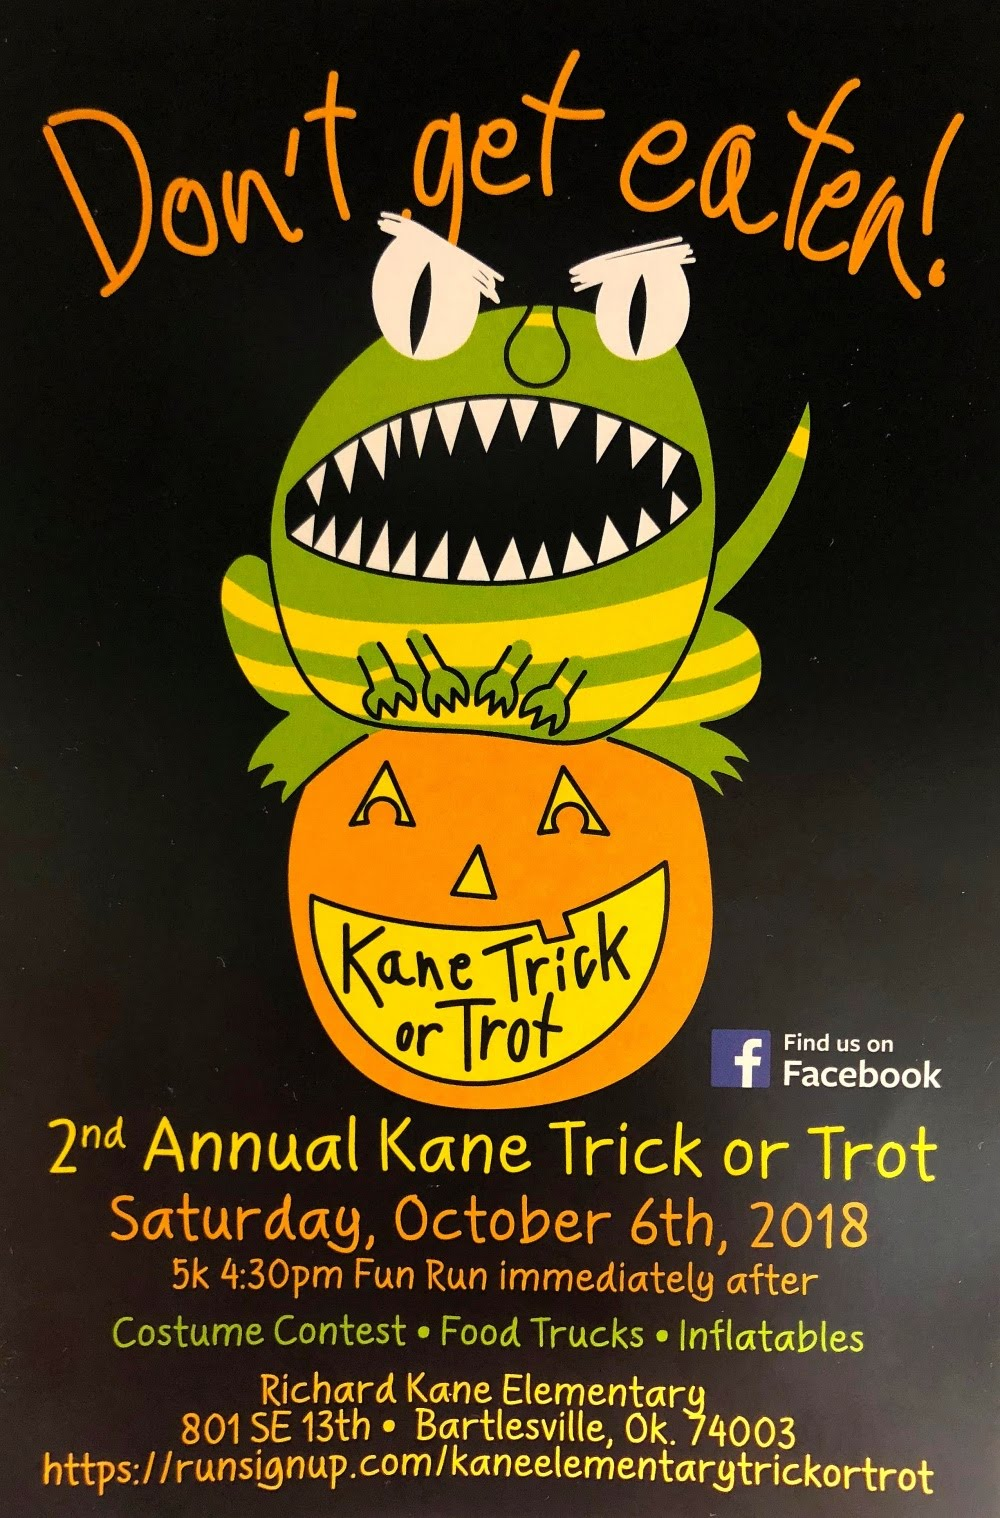 Kane Trick or Trot Flyer